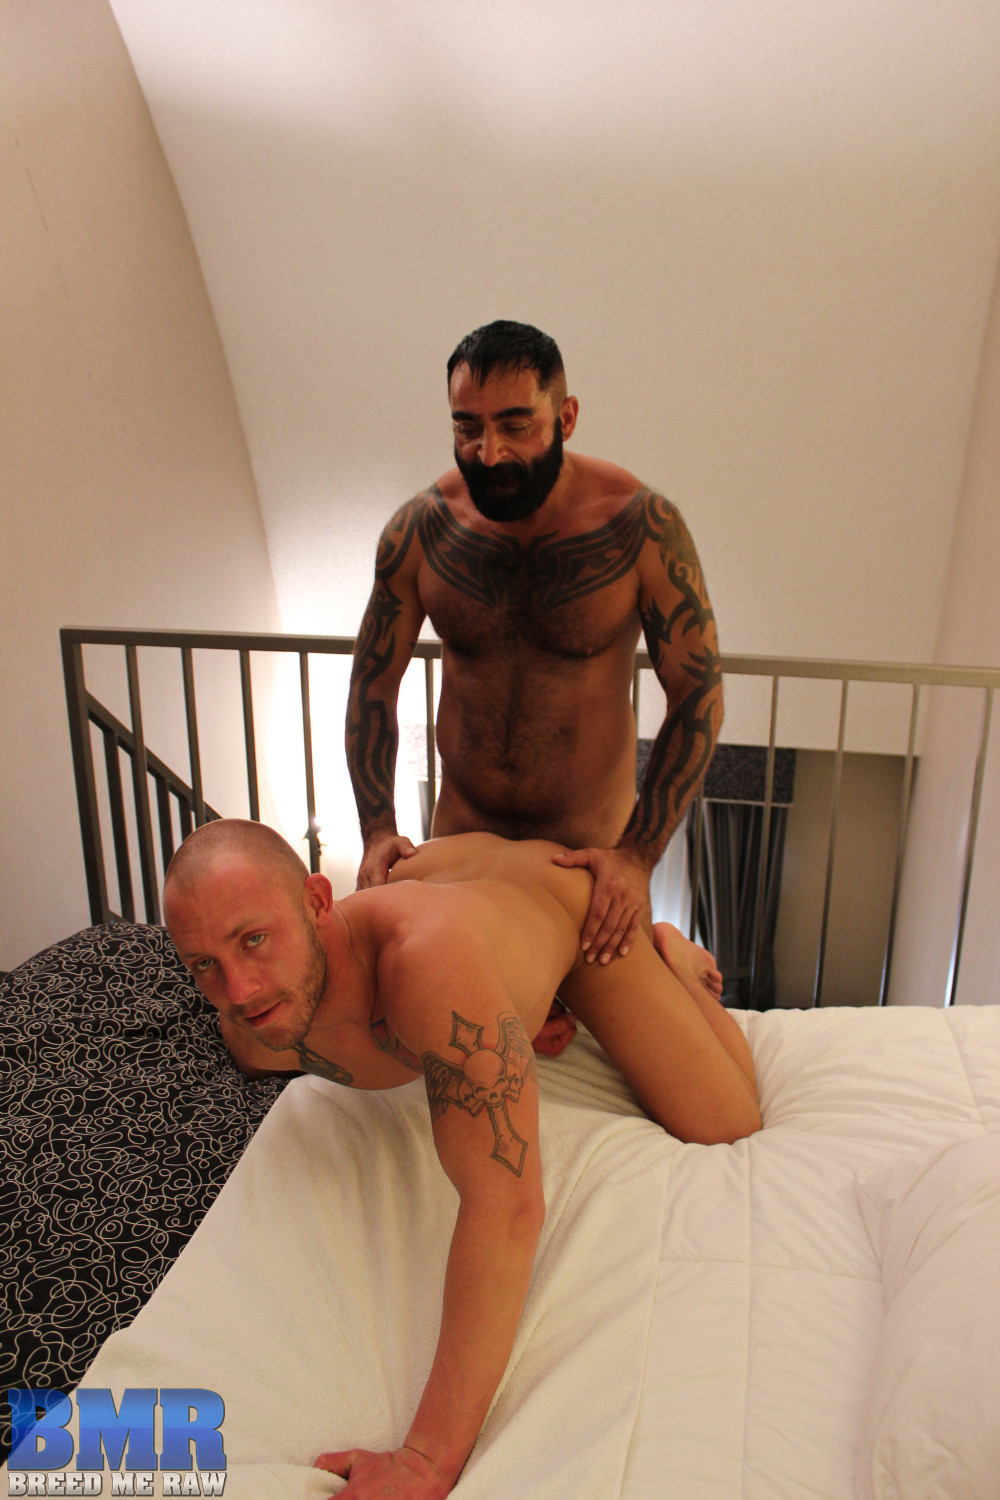 Breed Me Raw Tom Colt and Preston Johnson Hairy Daddy Barebacking Amateur Gay Porn 11 Amateur Hairy Tatted Daddy Barebacking a Hot Young Smooth Bottom